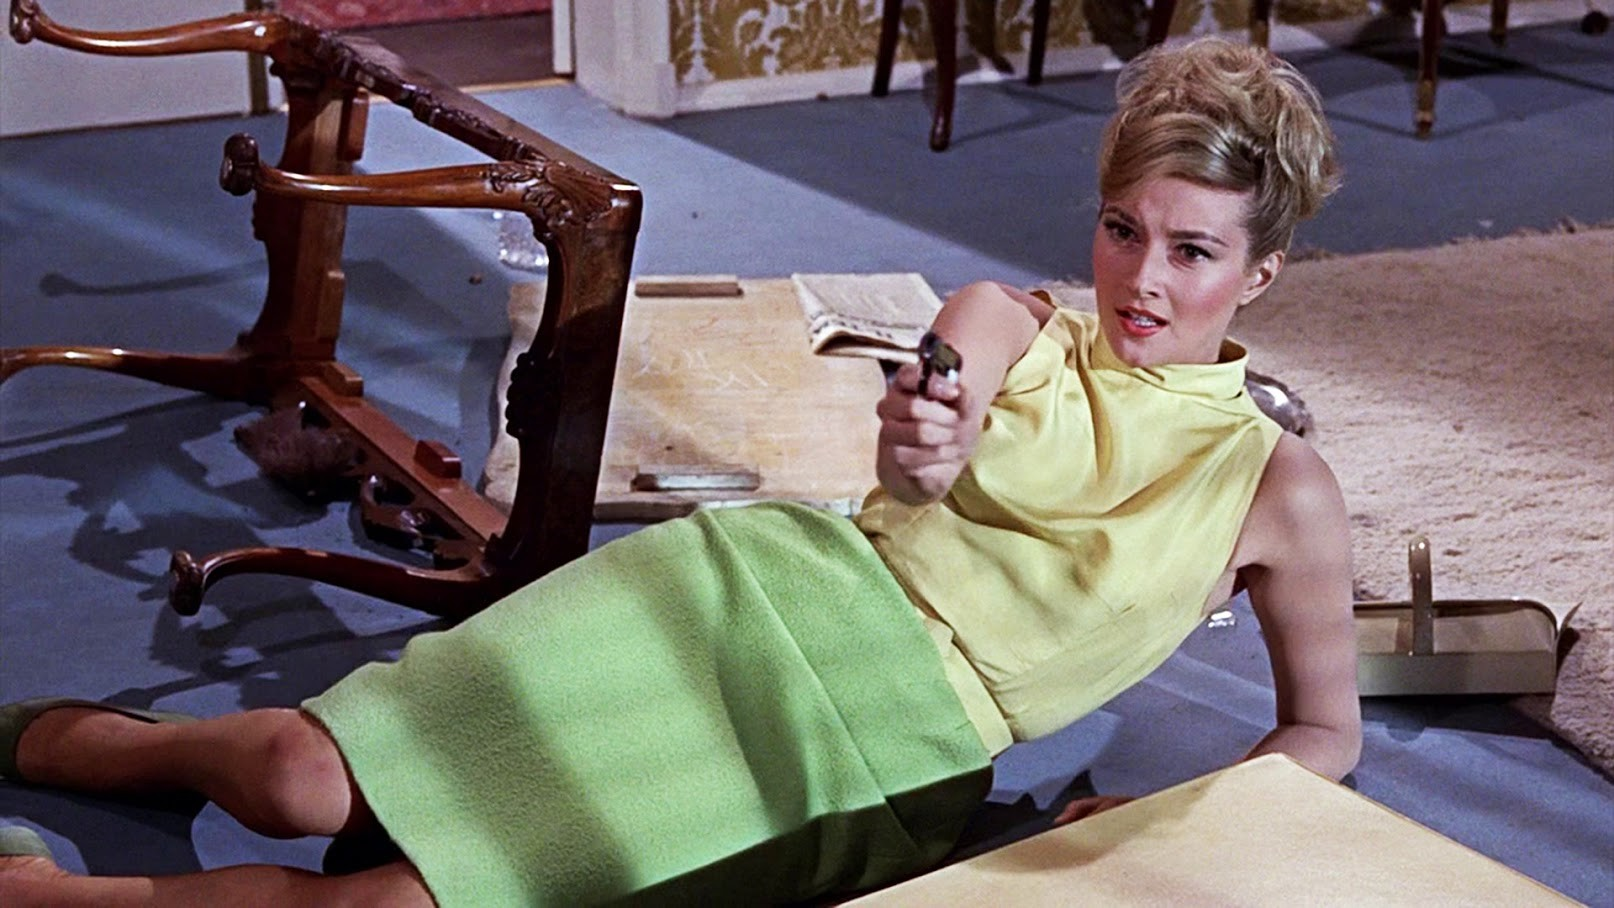 Tatjana Romanova, Iz Rusije z ljubeznijo (From Russia with love, 1963).